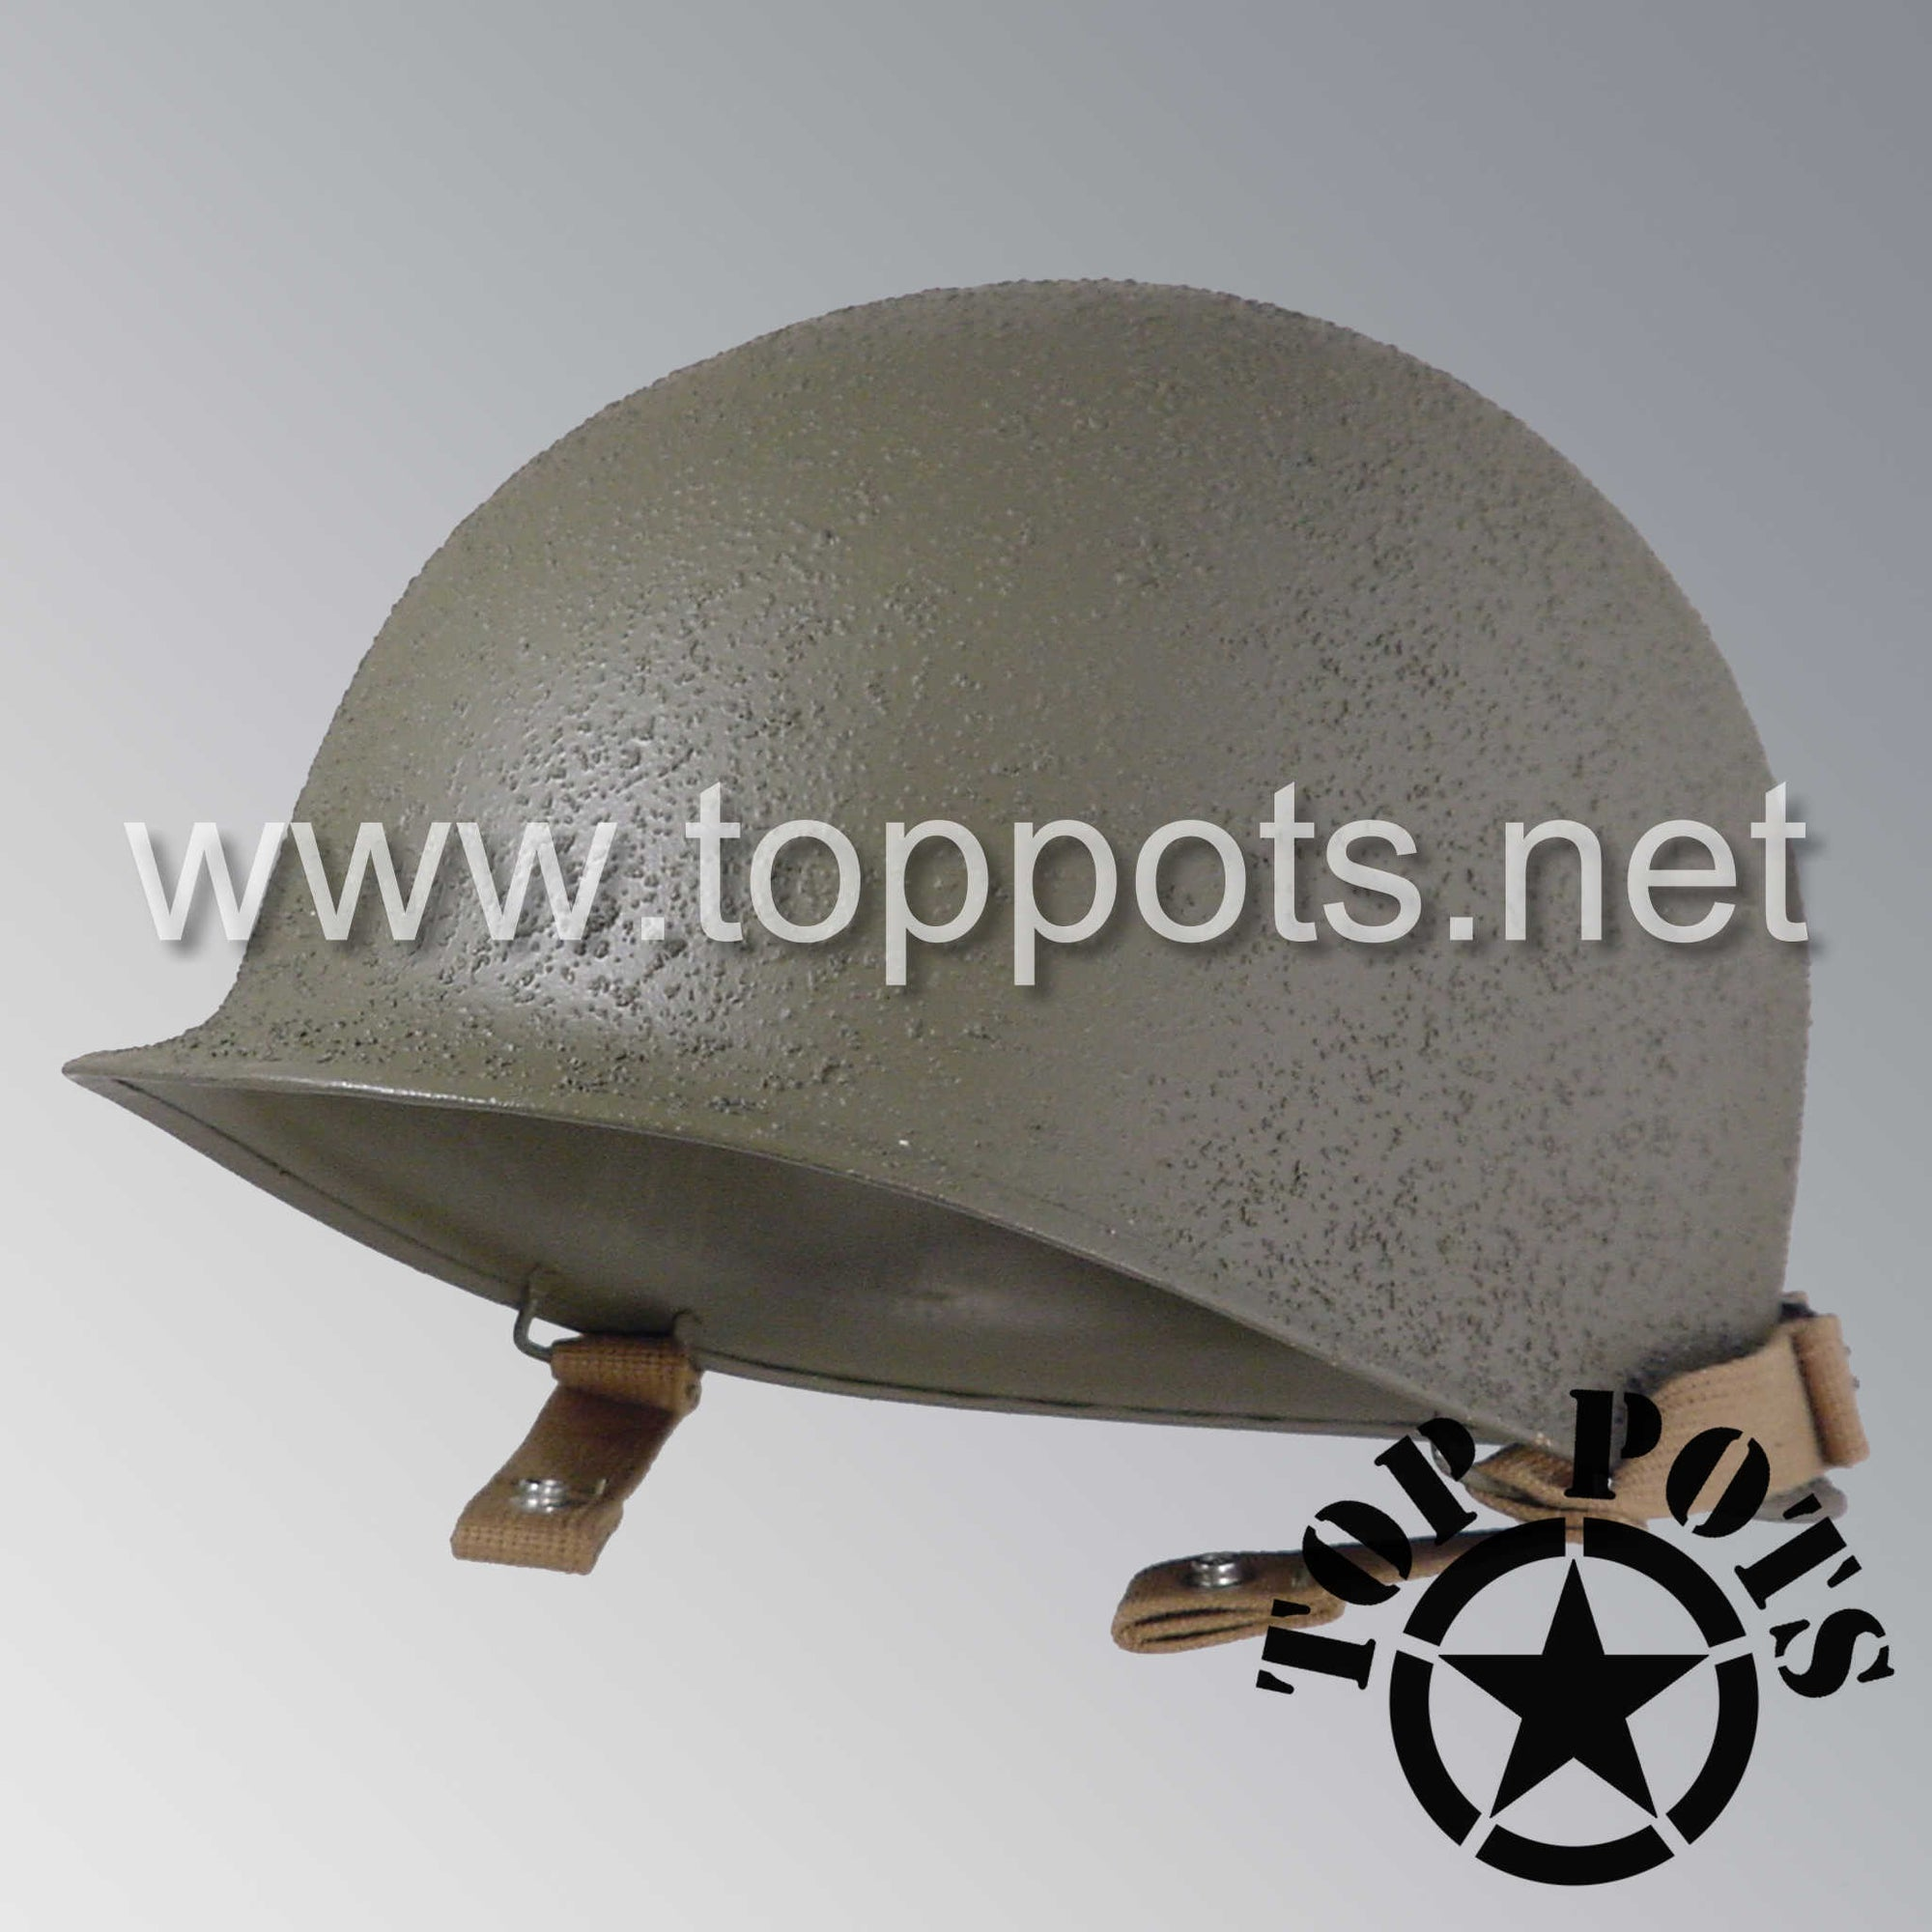 Image 1 of WWII US Army Restored Original M1C Paratrooper Airborne Helmet Fix Bale Shell with Chinstraps